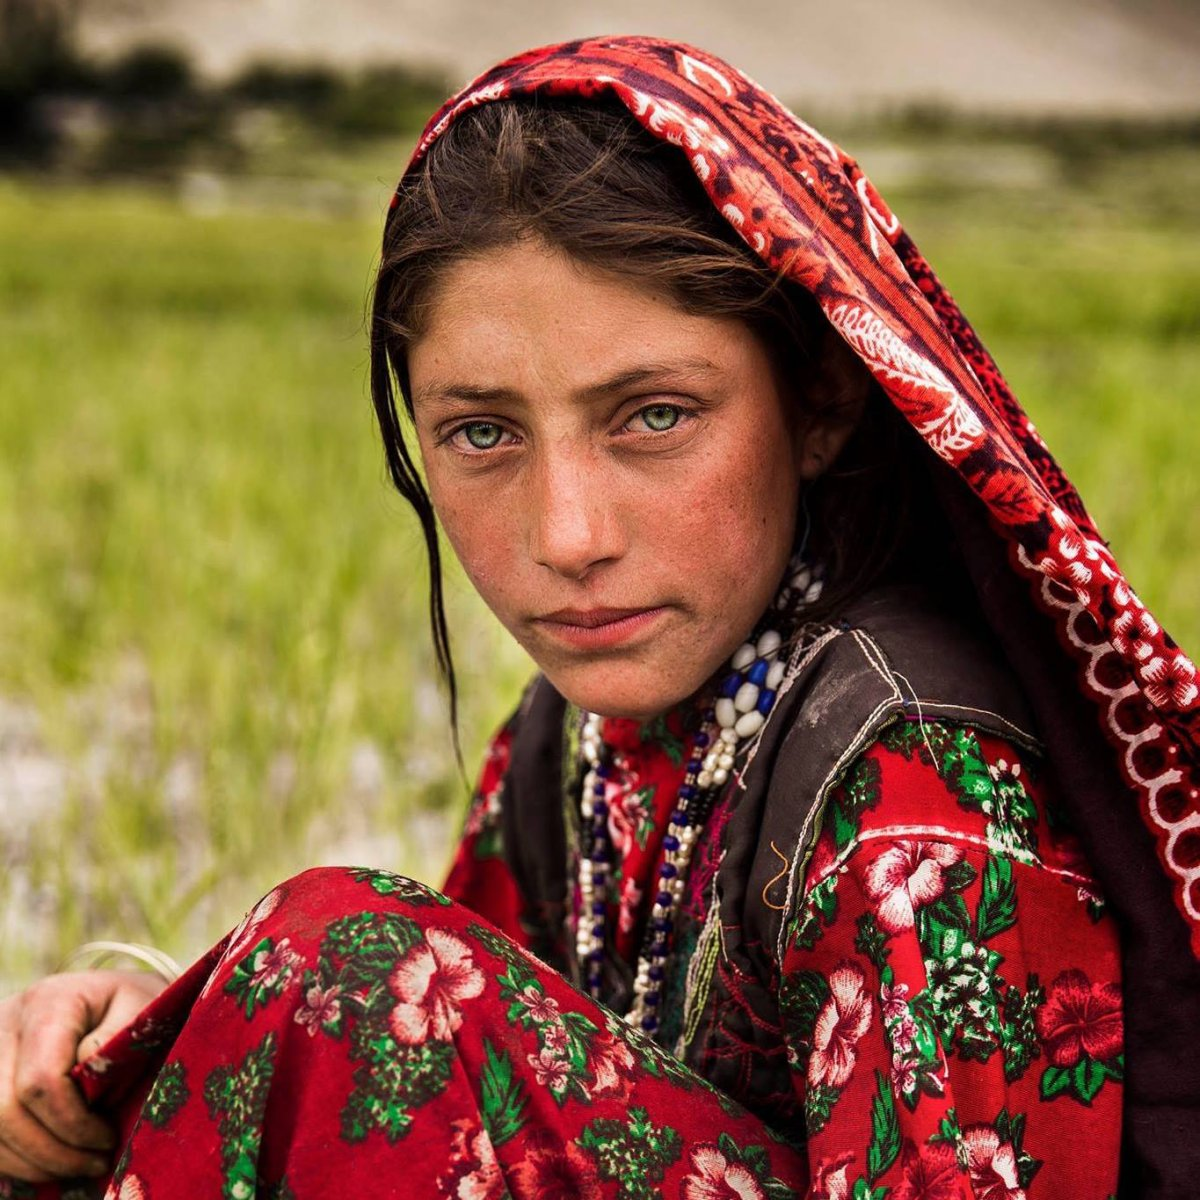 A girl working in the fields of the Wakhan Corridor in Afghanistan photographed by Mihaela Noroc